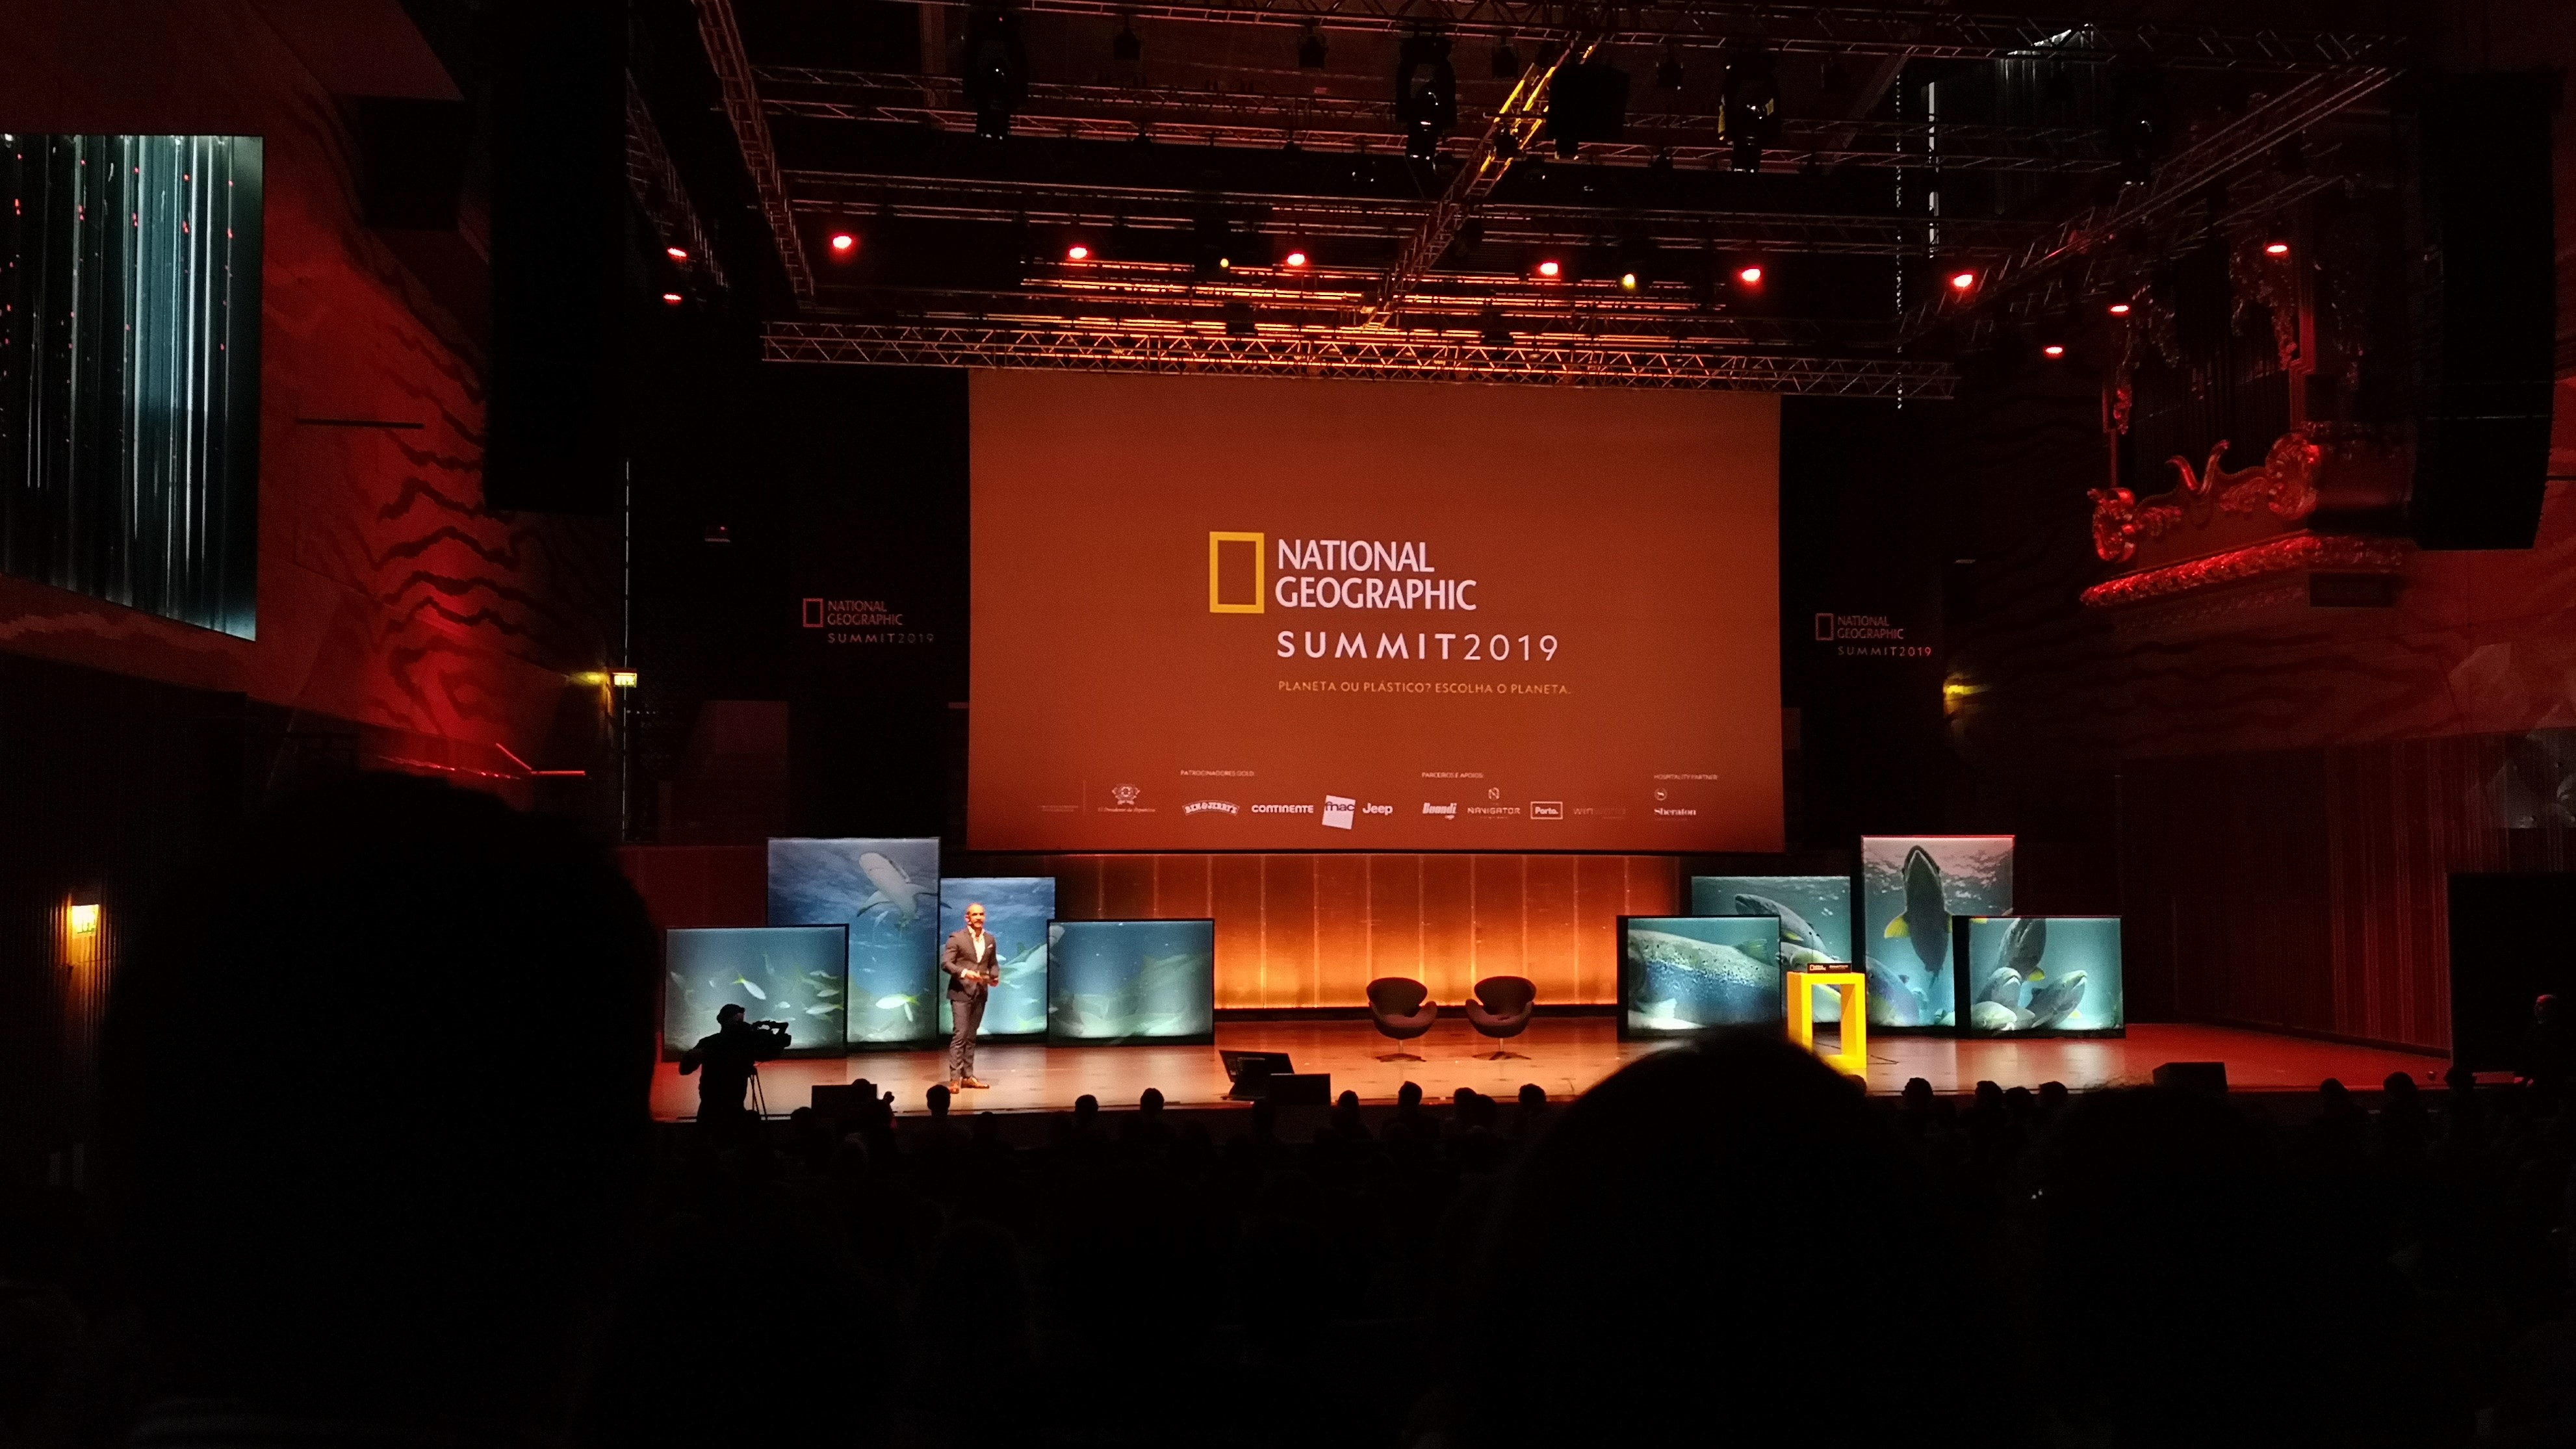 National Geographic Summit 2019. Fotografia: Mariana Miranda.